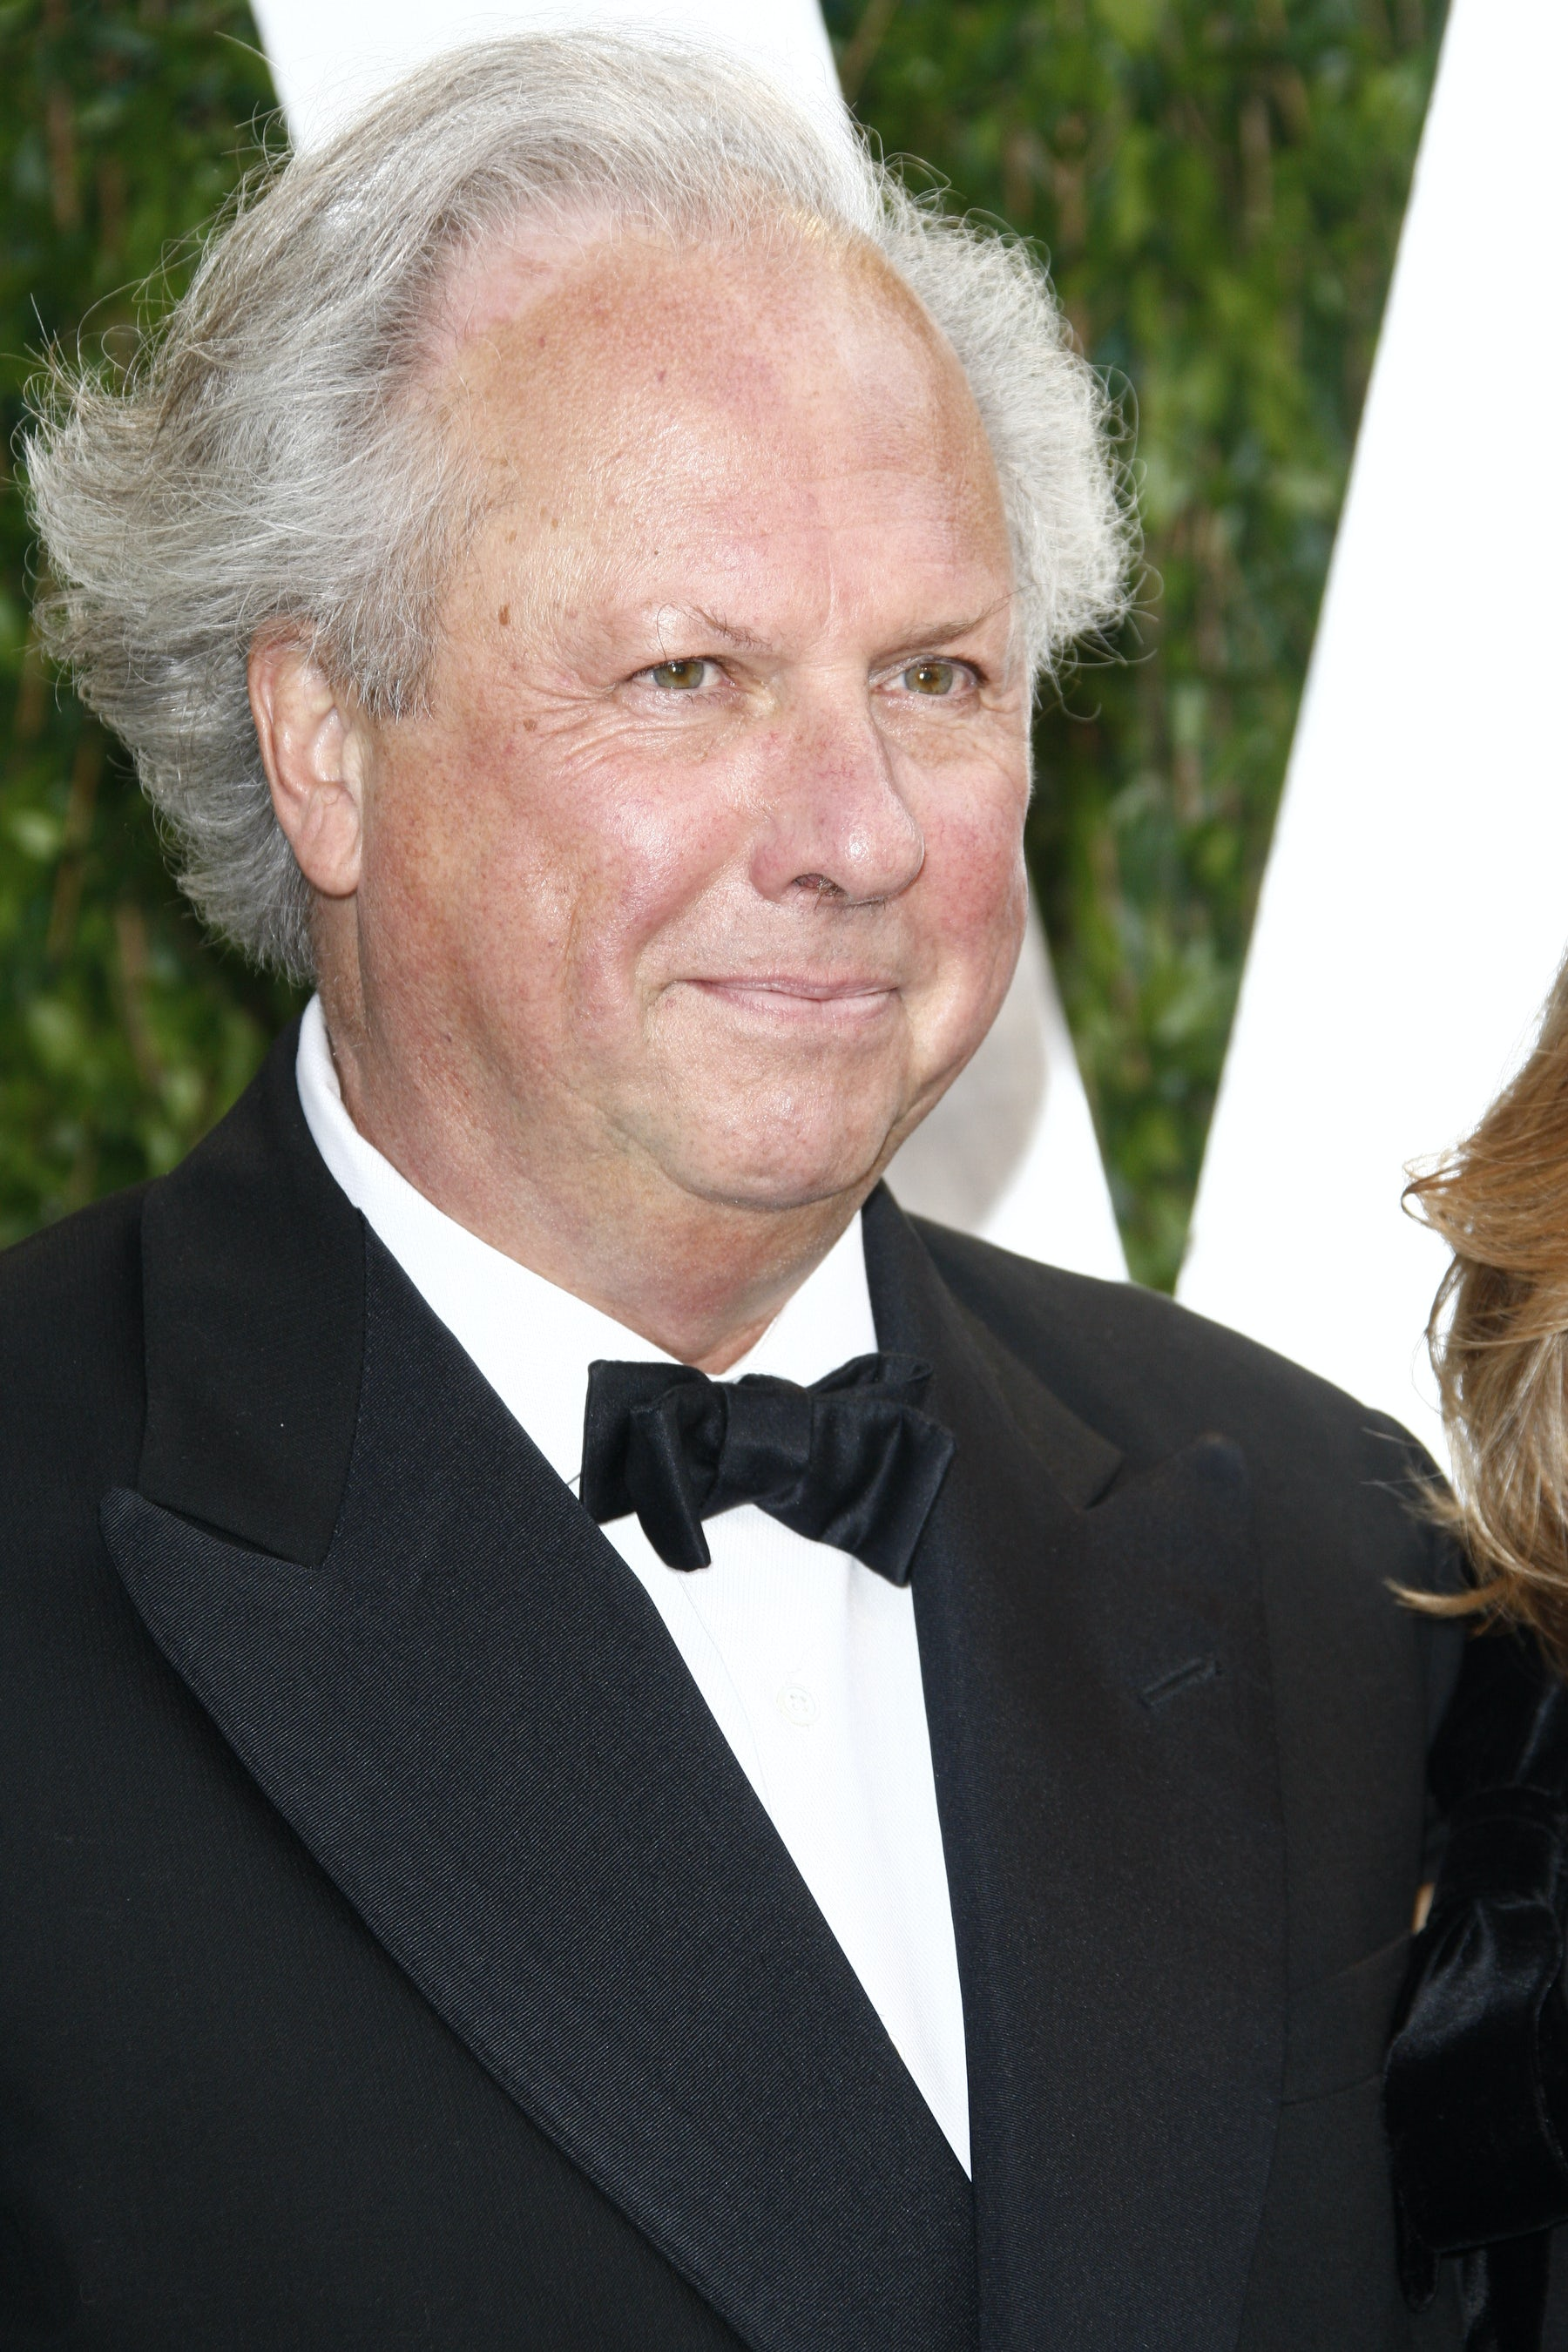 Graydon Carter | Source: Shutterstock